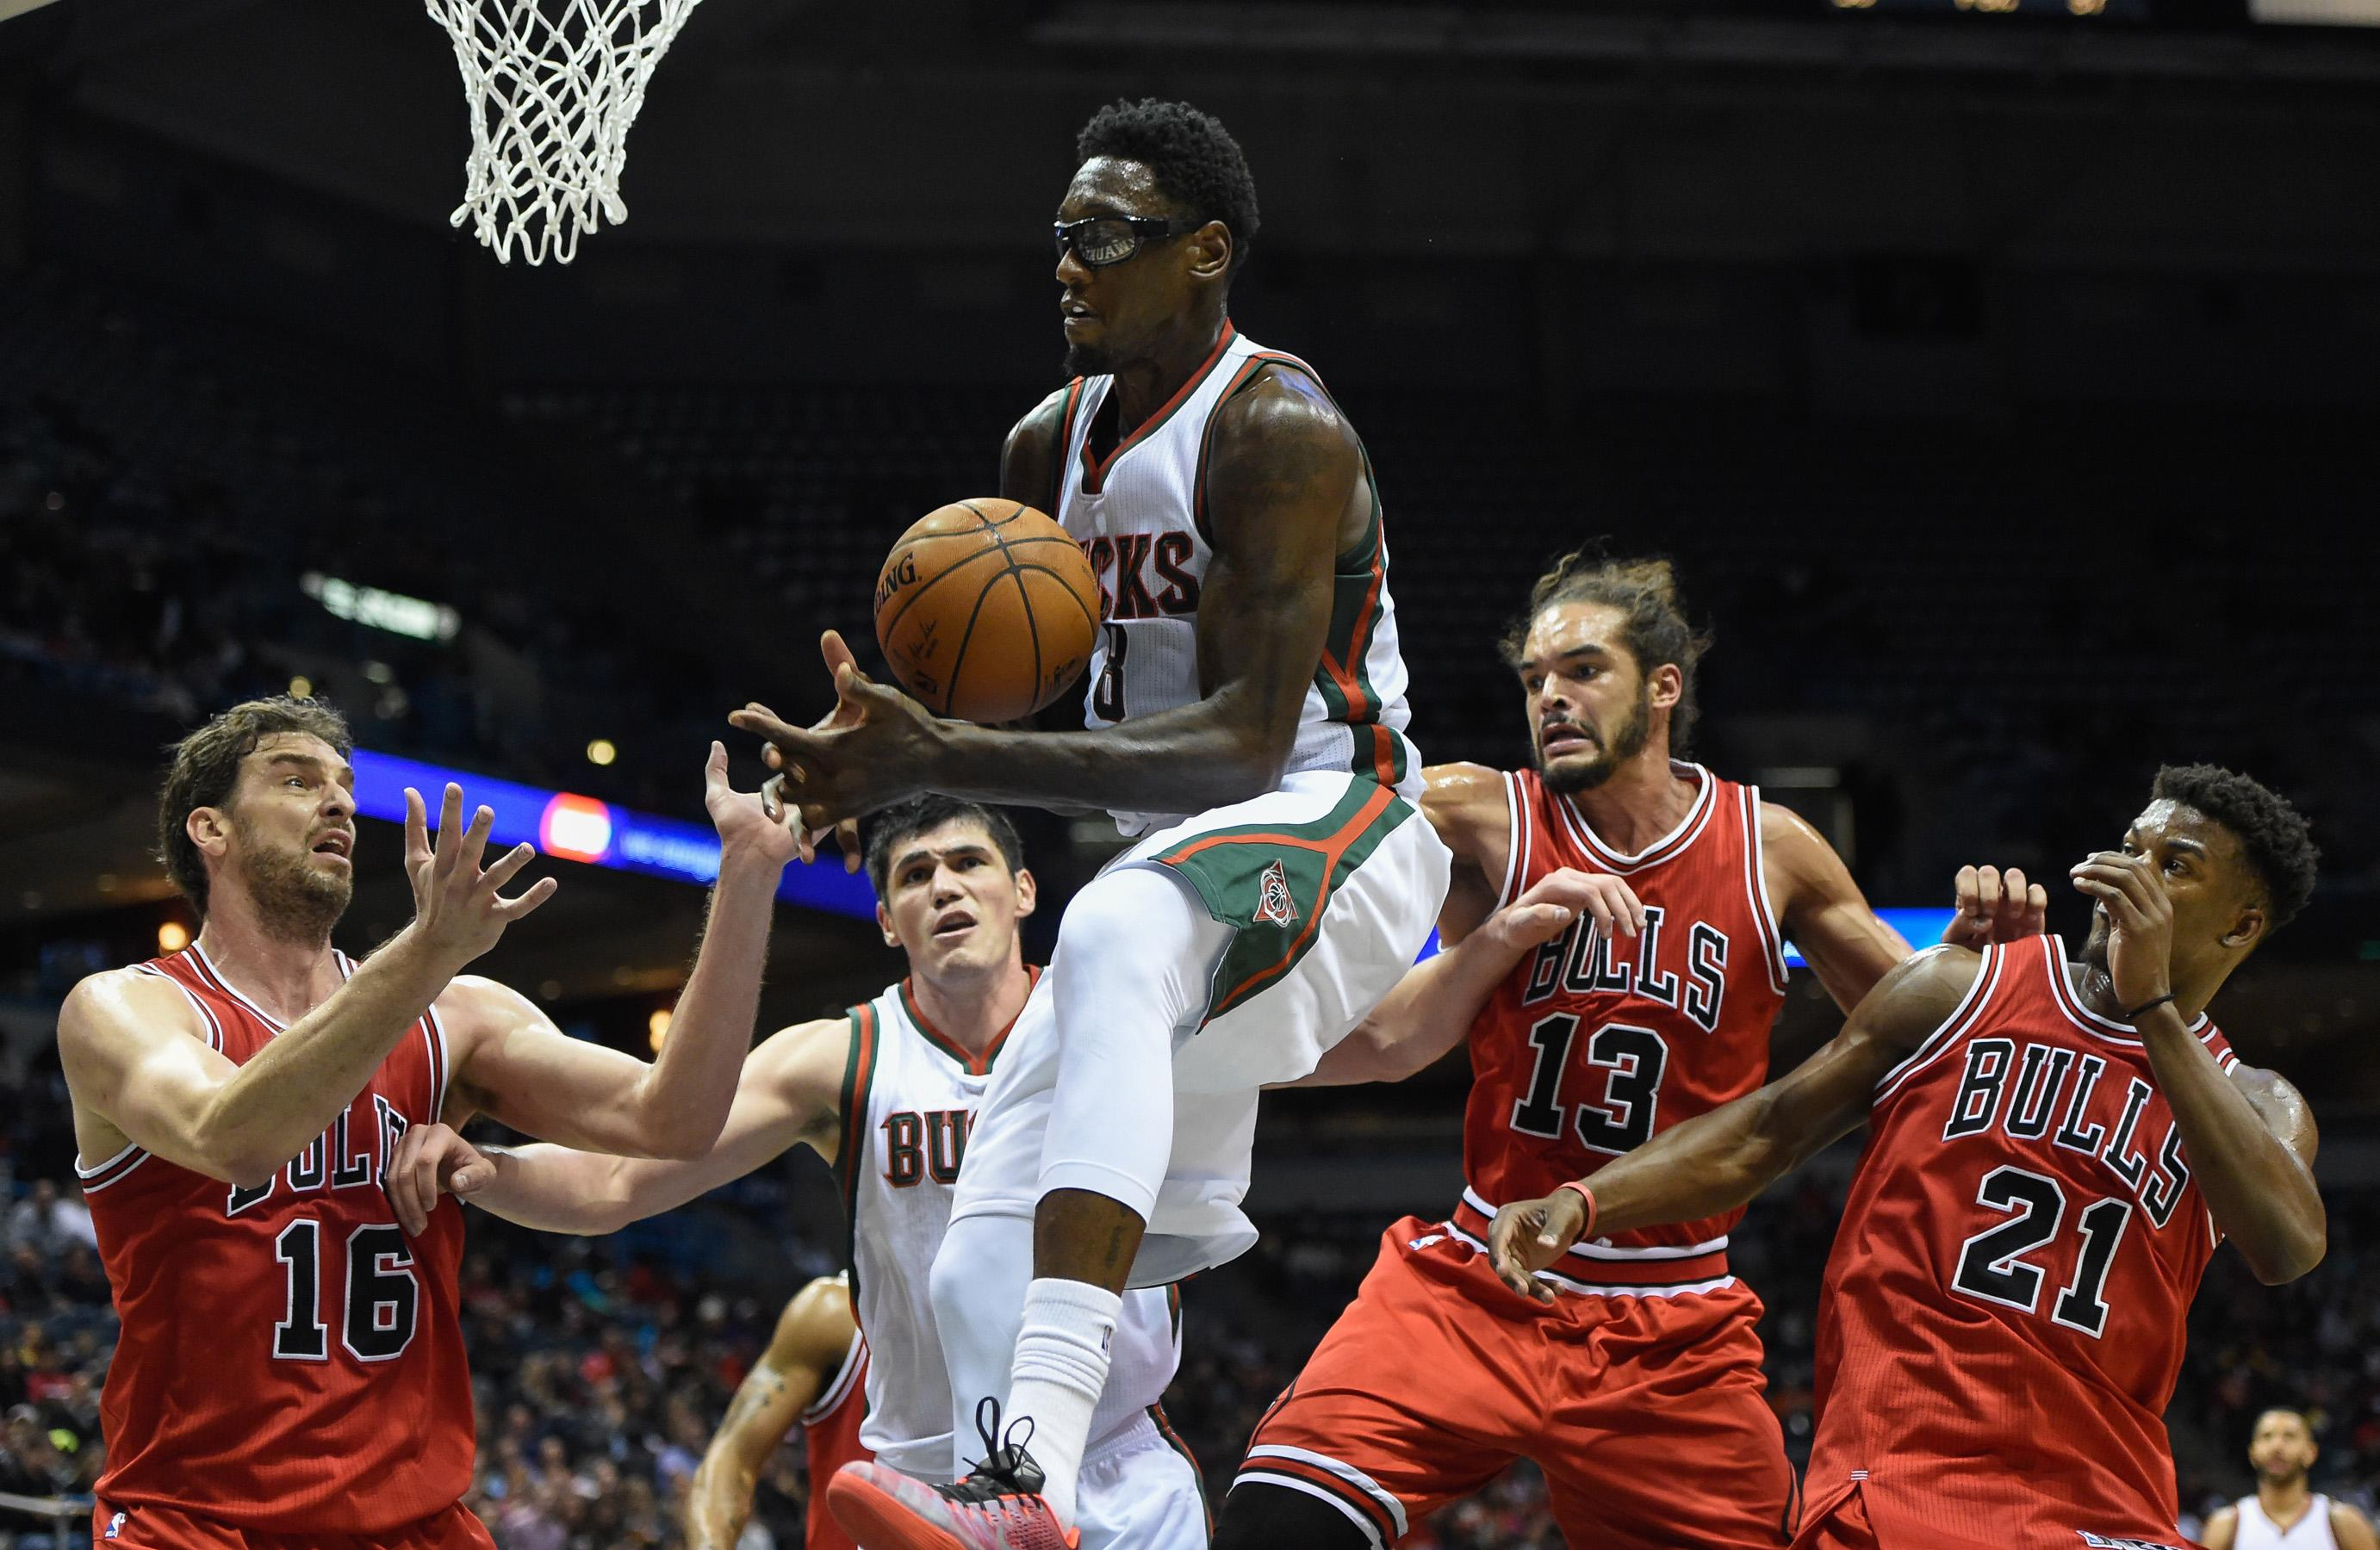 The 10-man rotation, starring what it's been like to be Larry Sanders